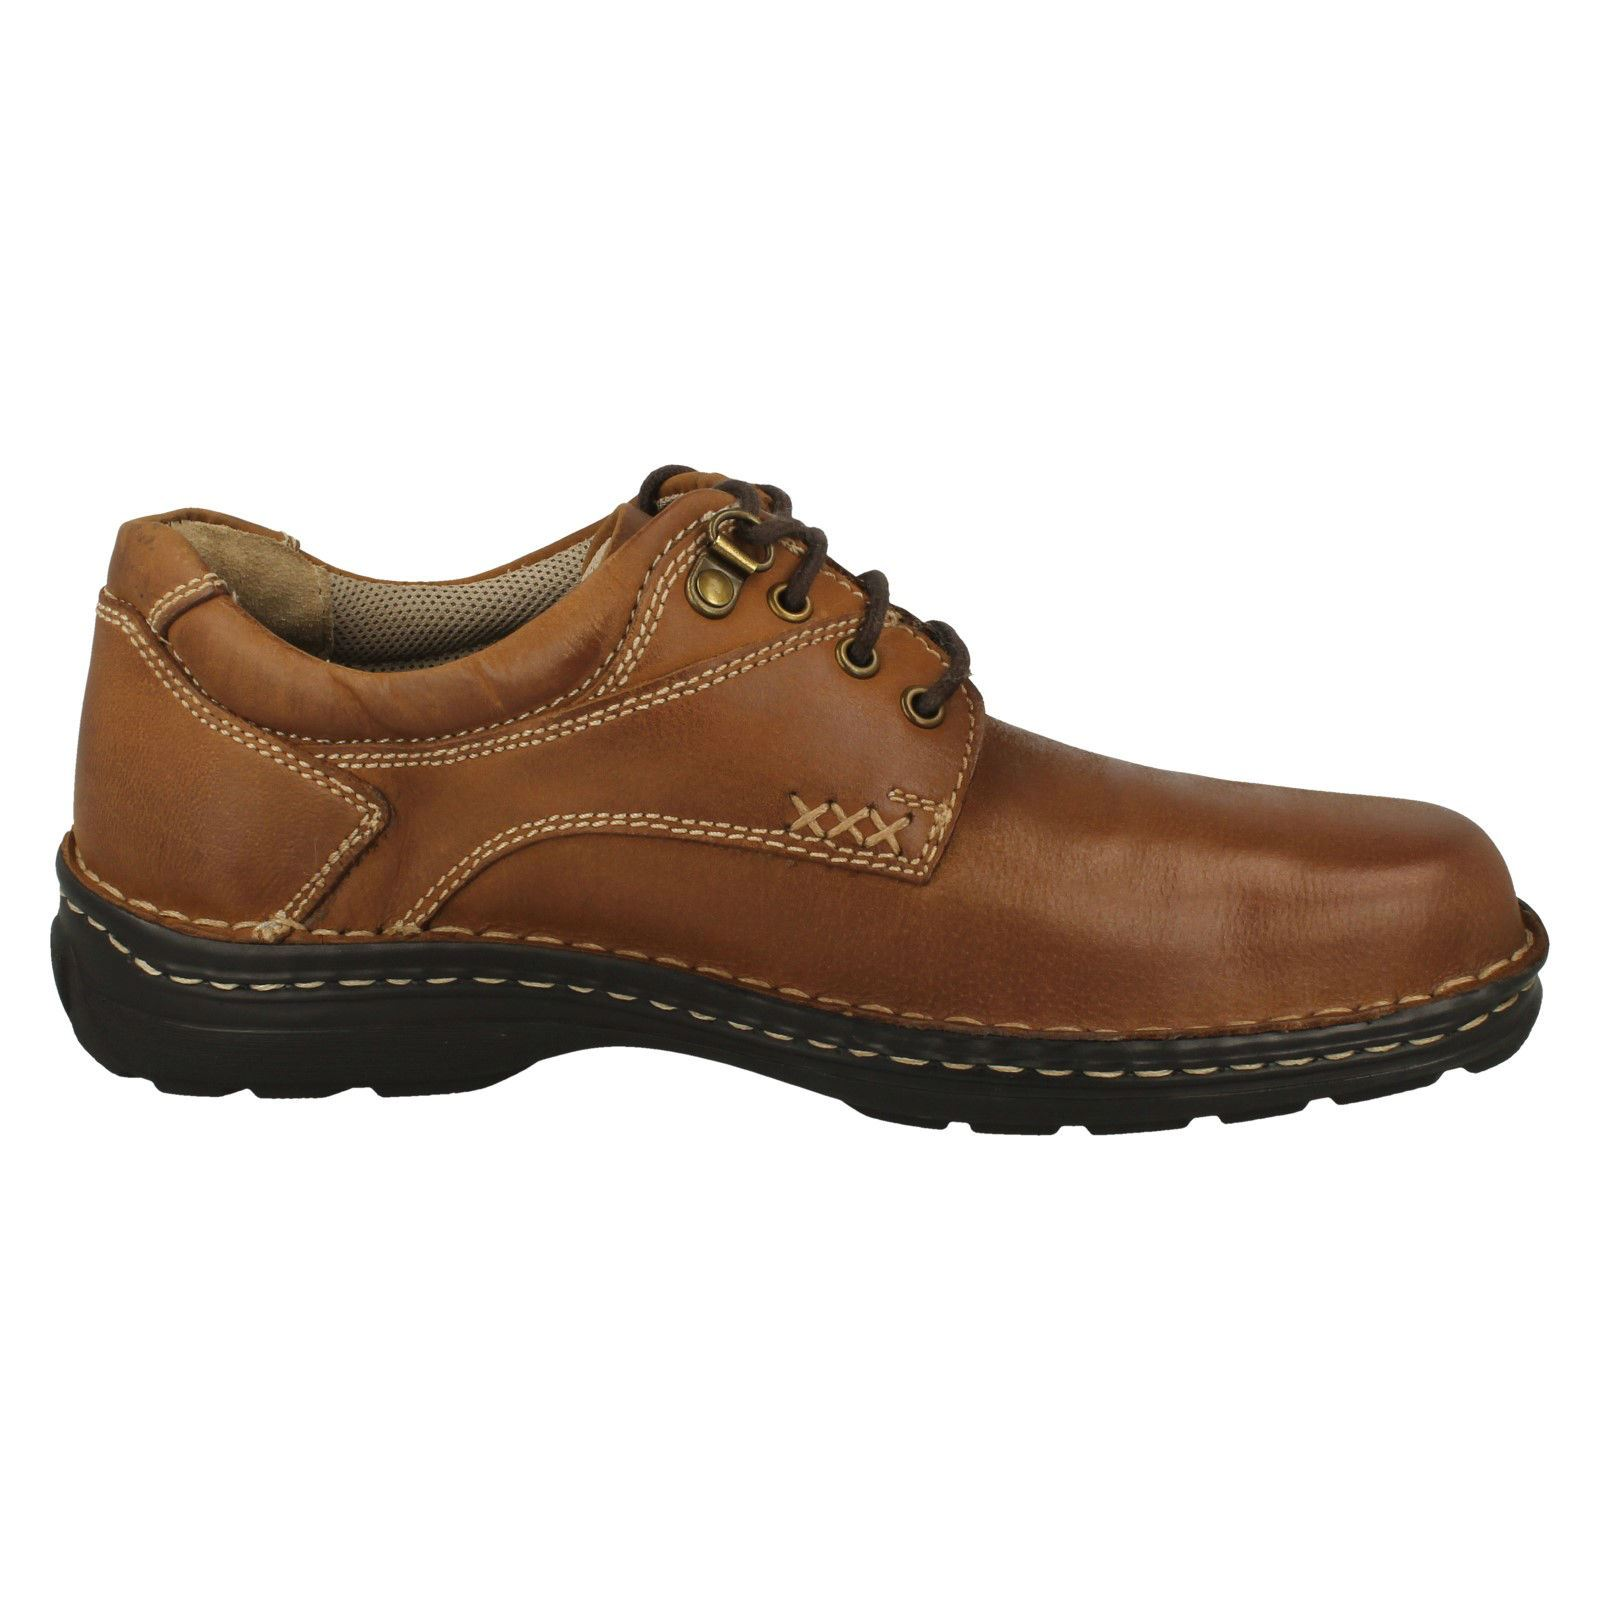 Herren Hush Puppies Schuhes Lace Up Casual Schuhes Puppies Geography Lace e1ac5f